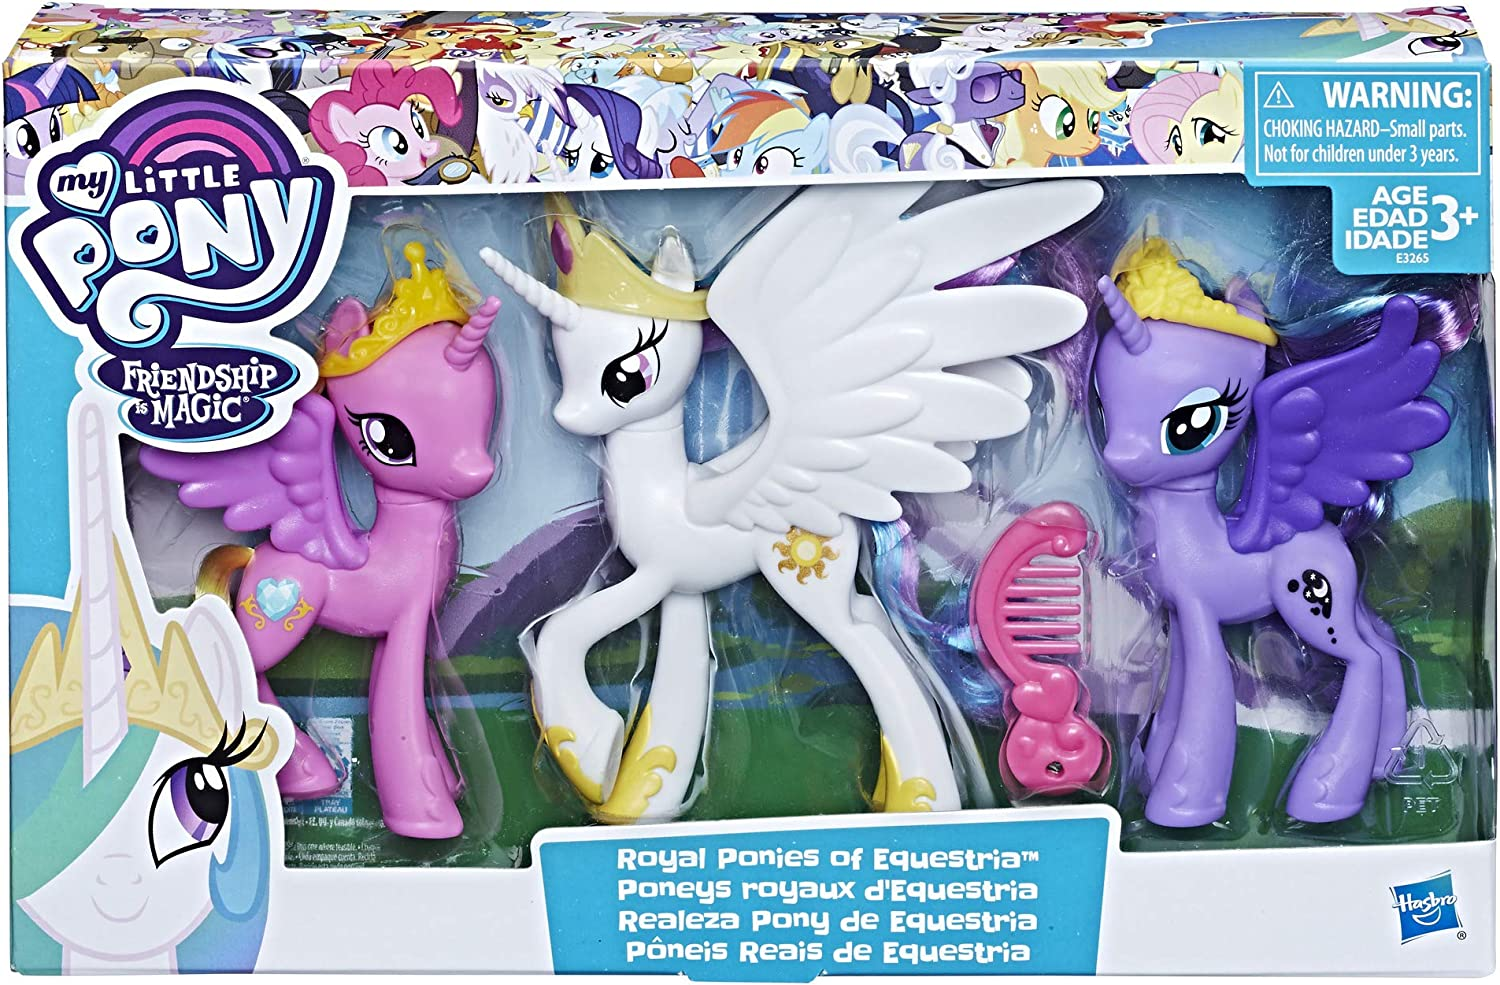 - Amazon.com: My Little Pony Royal Ponies Of Equestria Figures: Toys